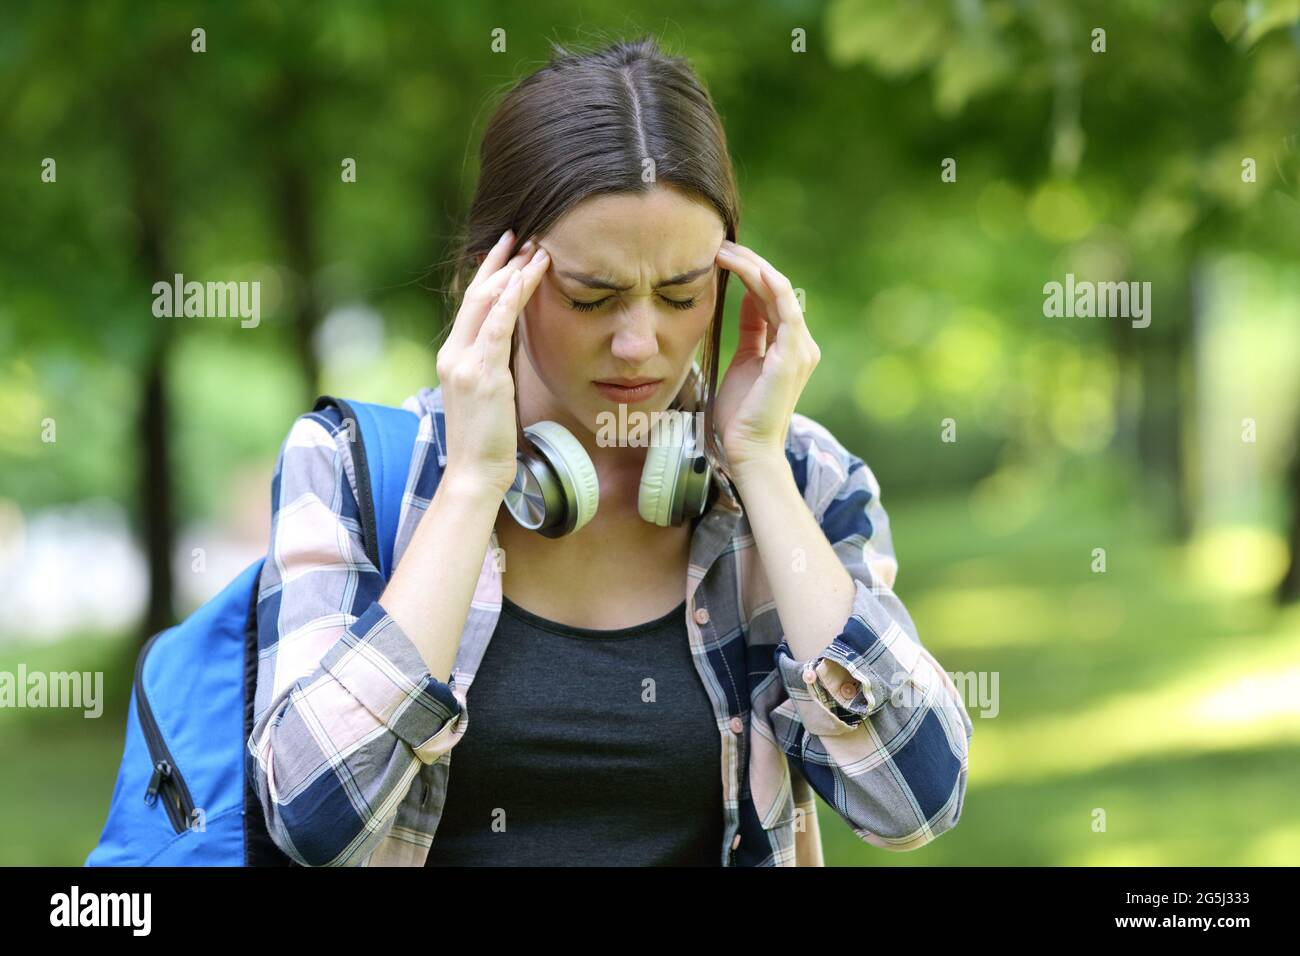 Student suffering headache walking in a park or campus on summer Stock Photo